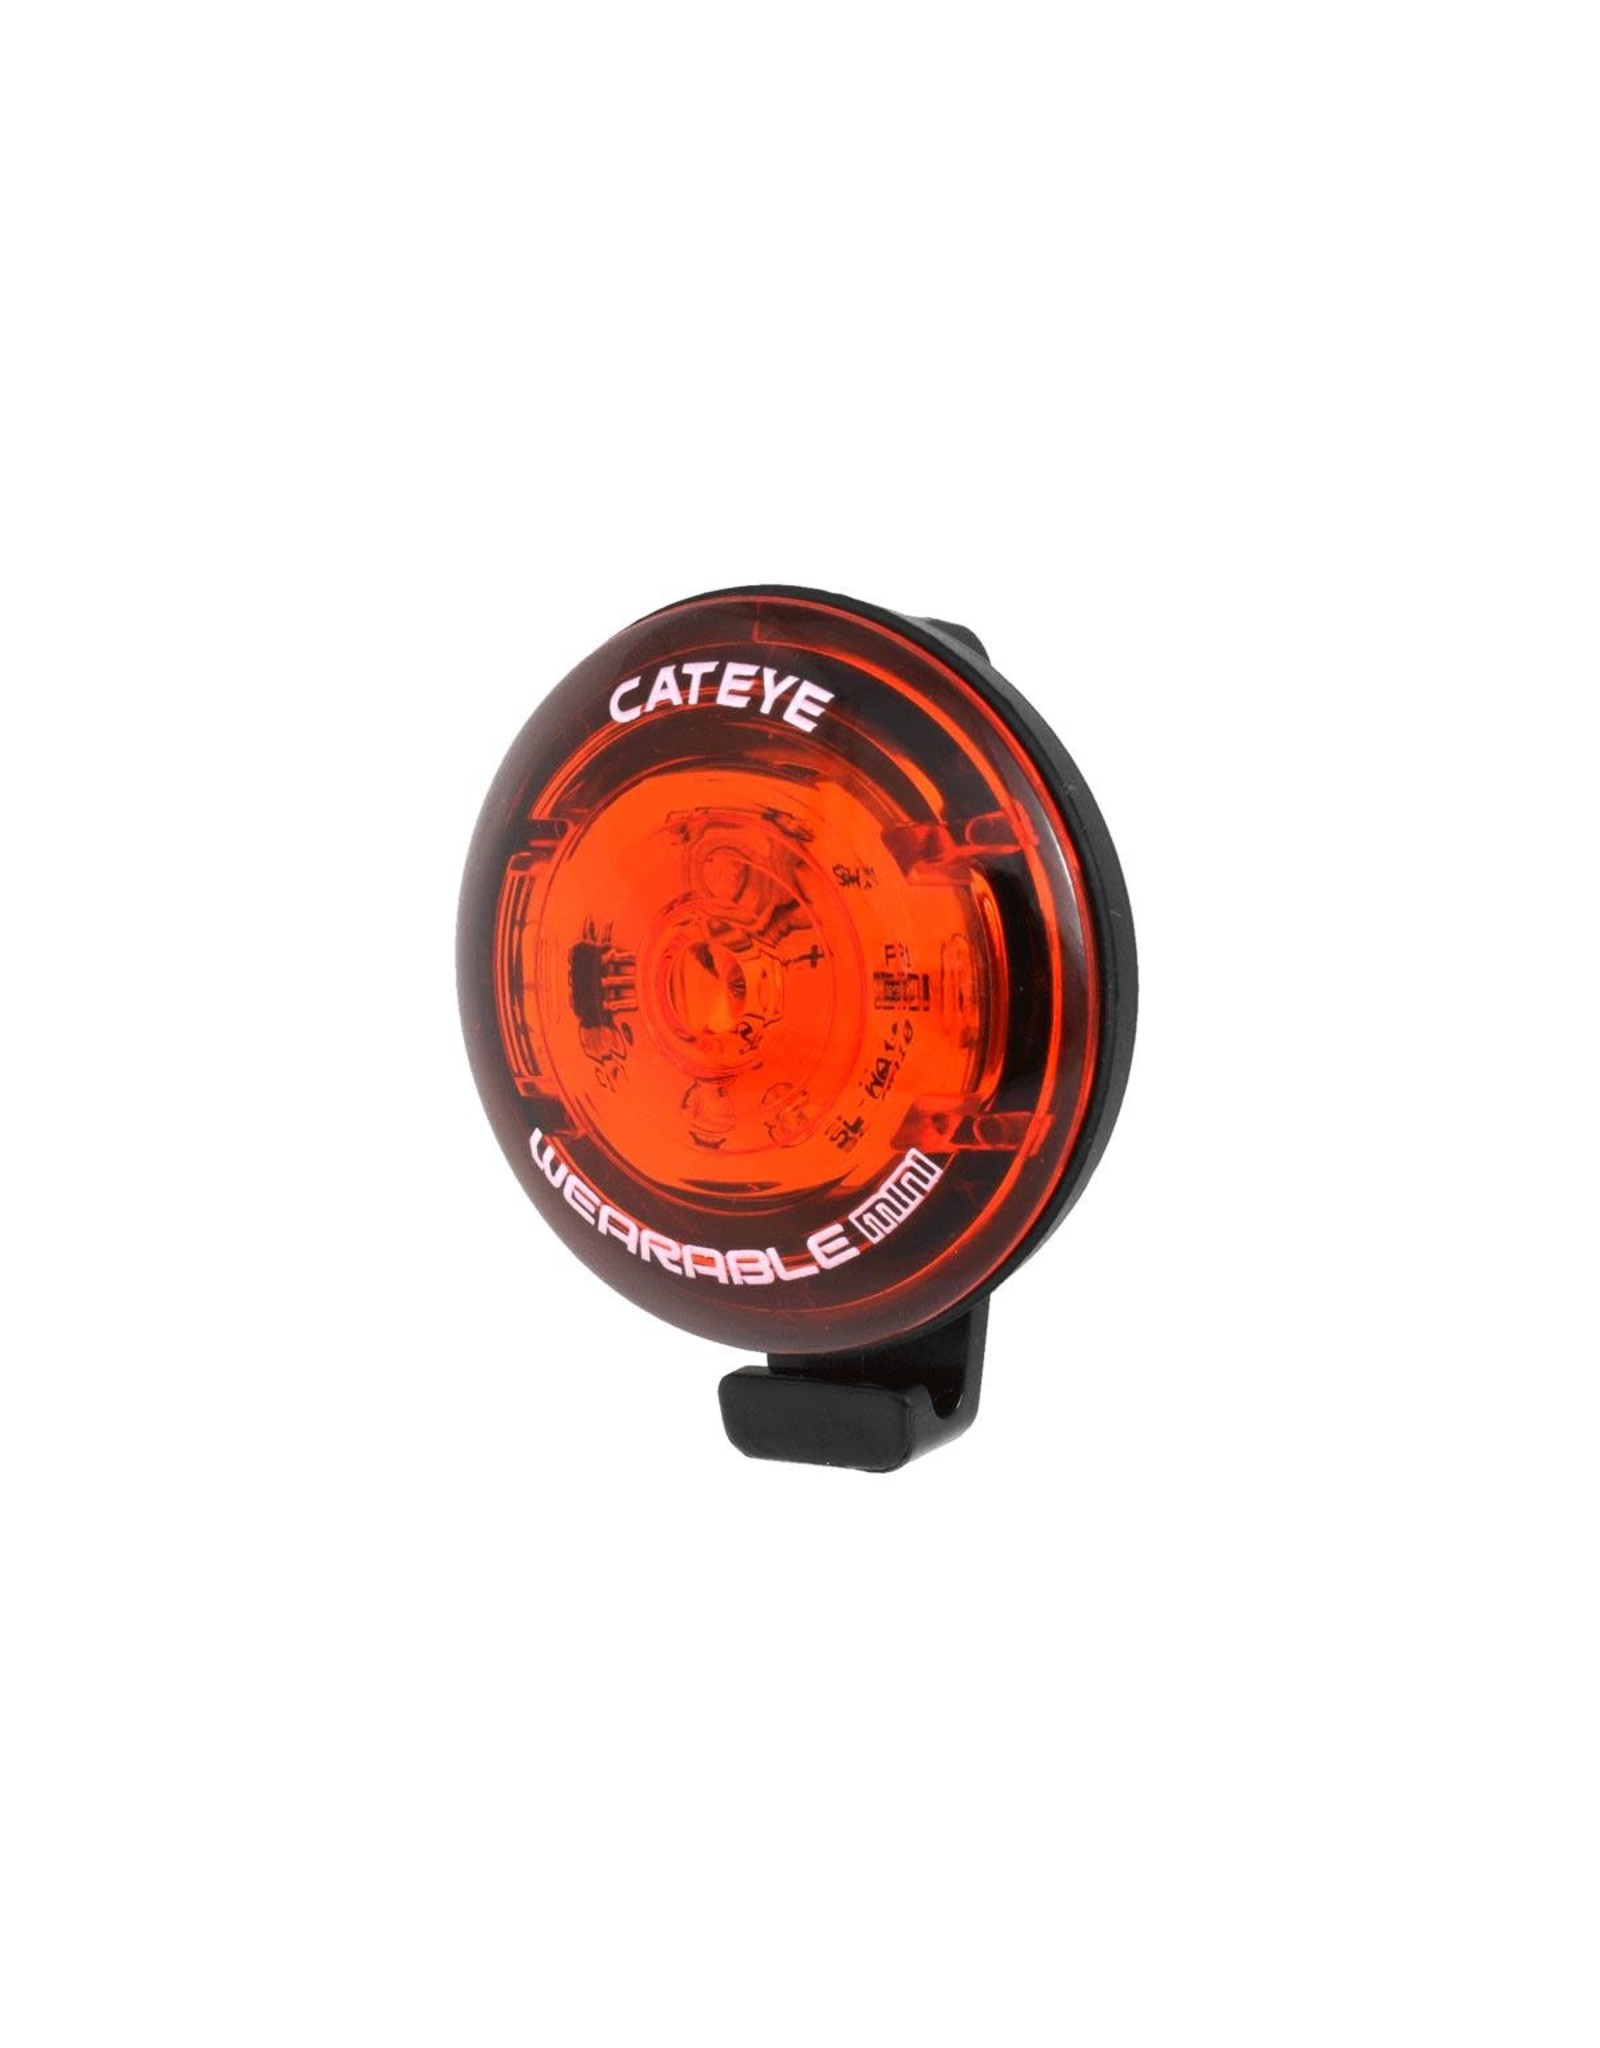 Cateye Rear Light Wearable Mini